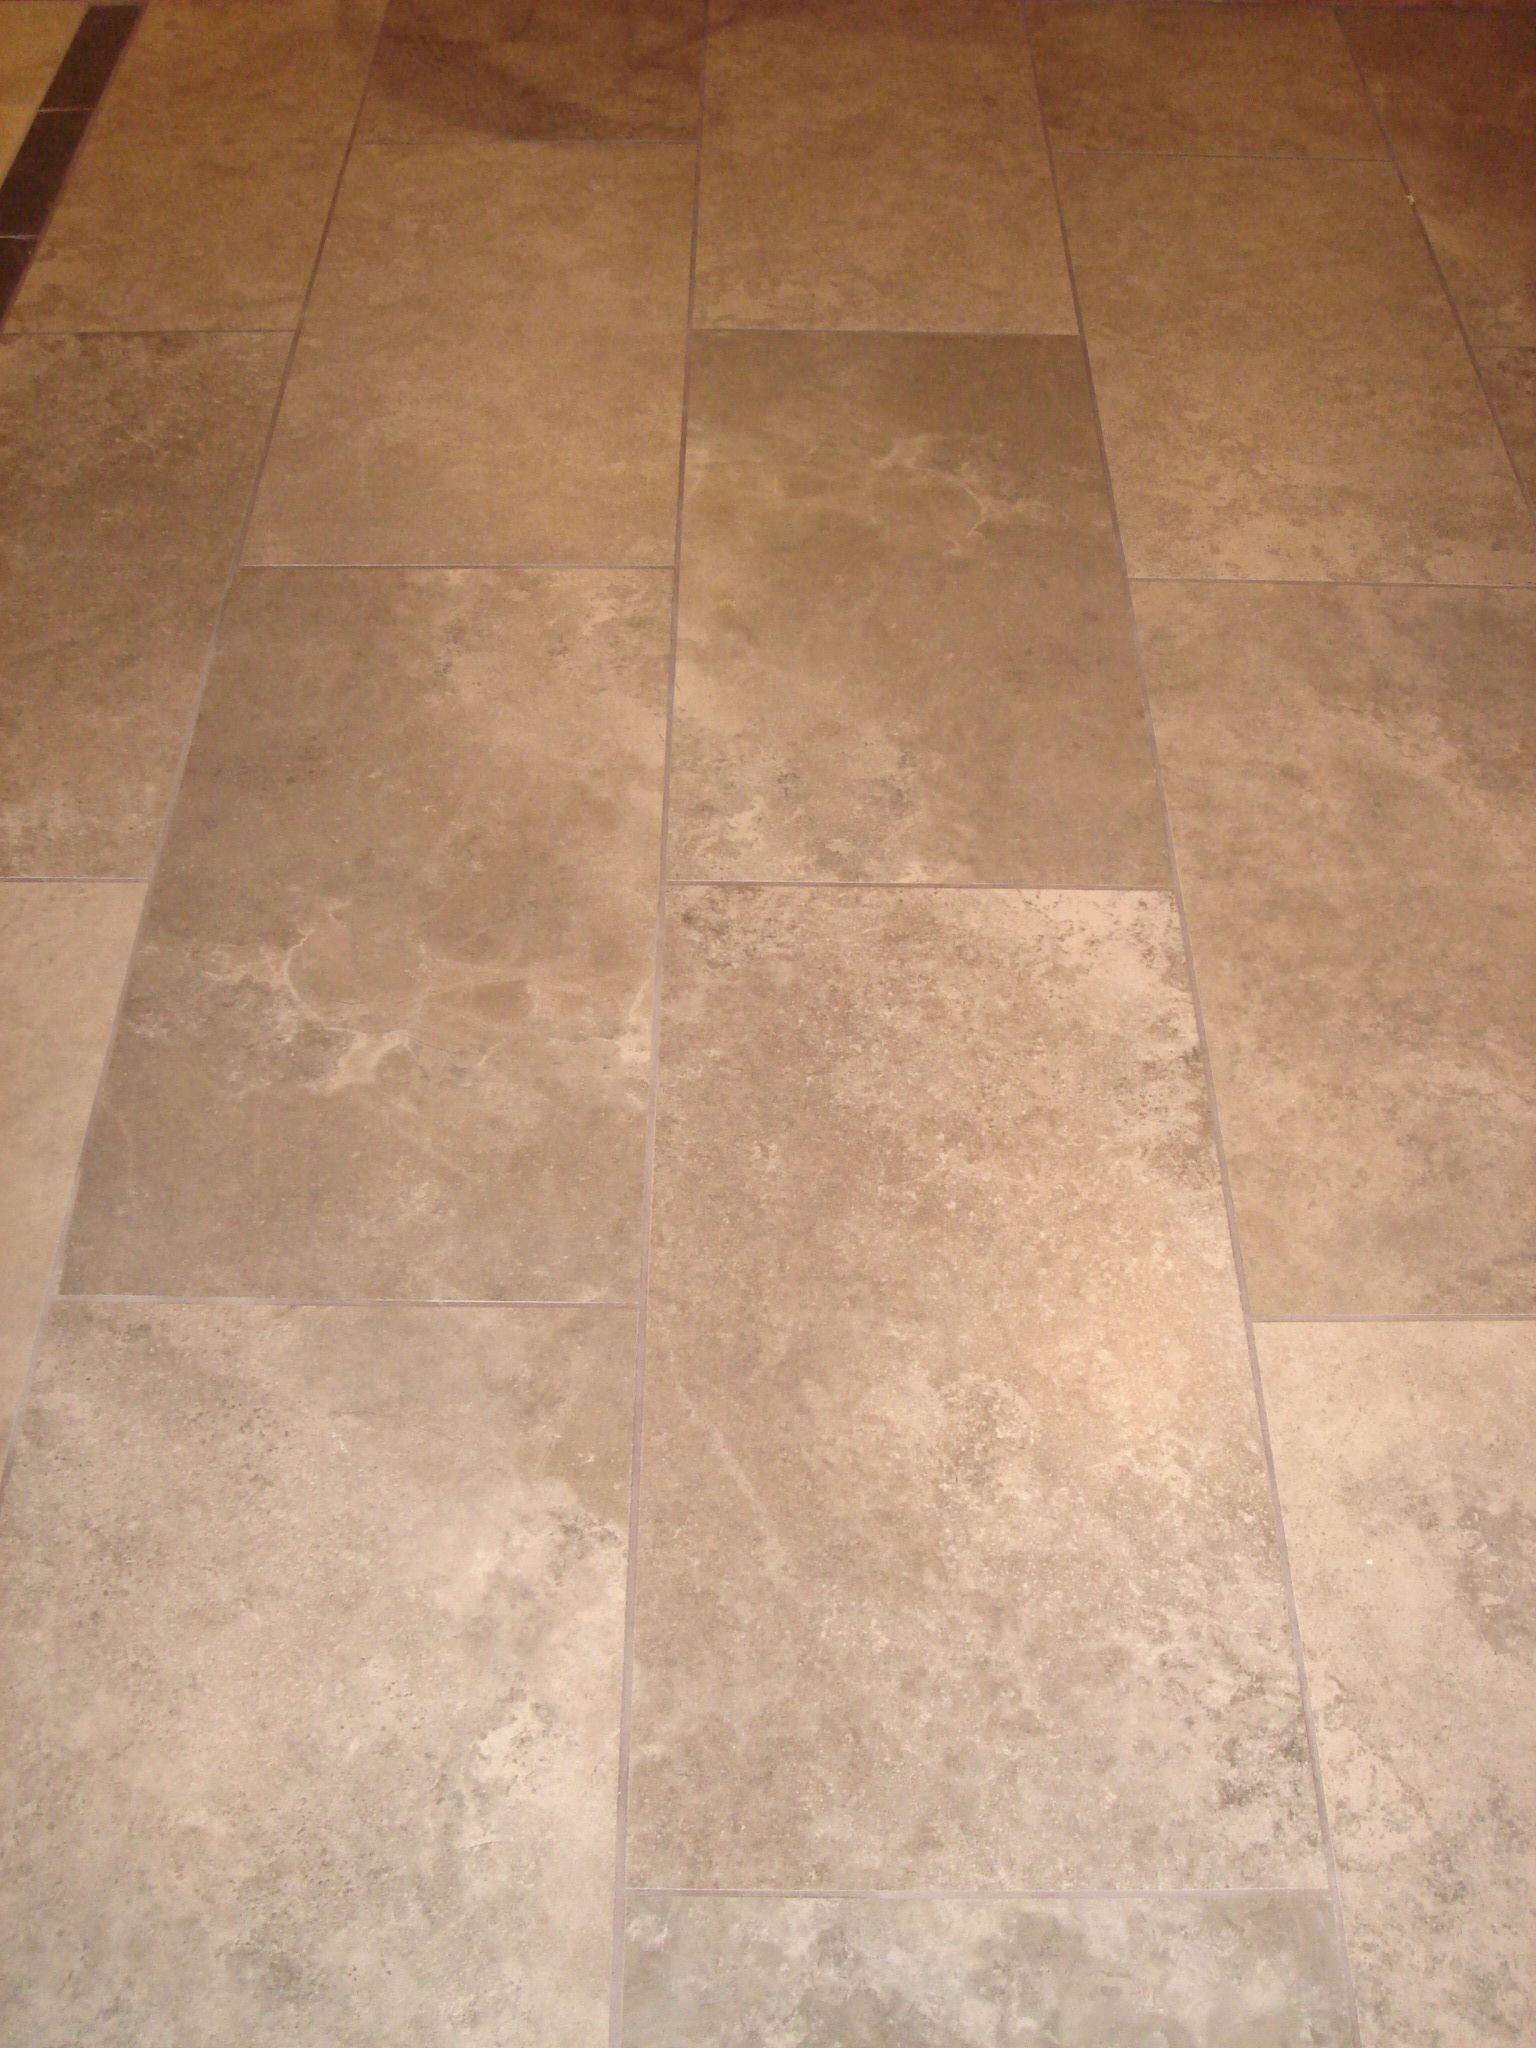 Rectangle Tile Patterns Tile Floor Rectangle Tiles Flooring